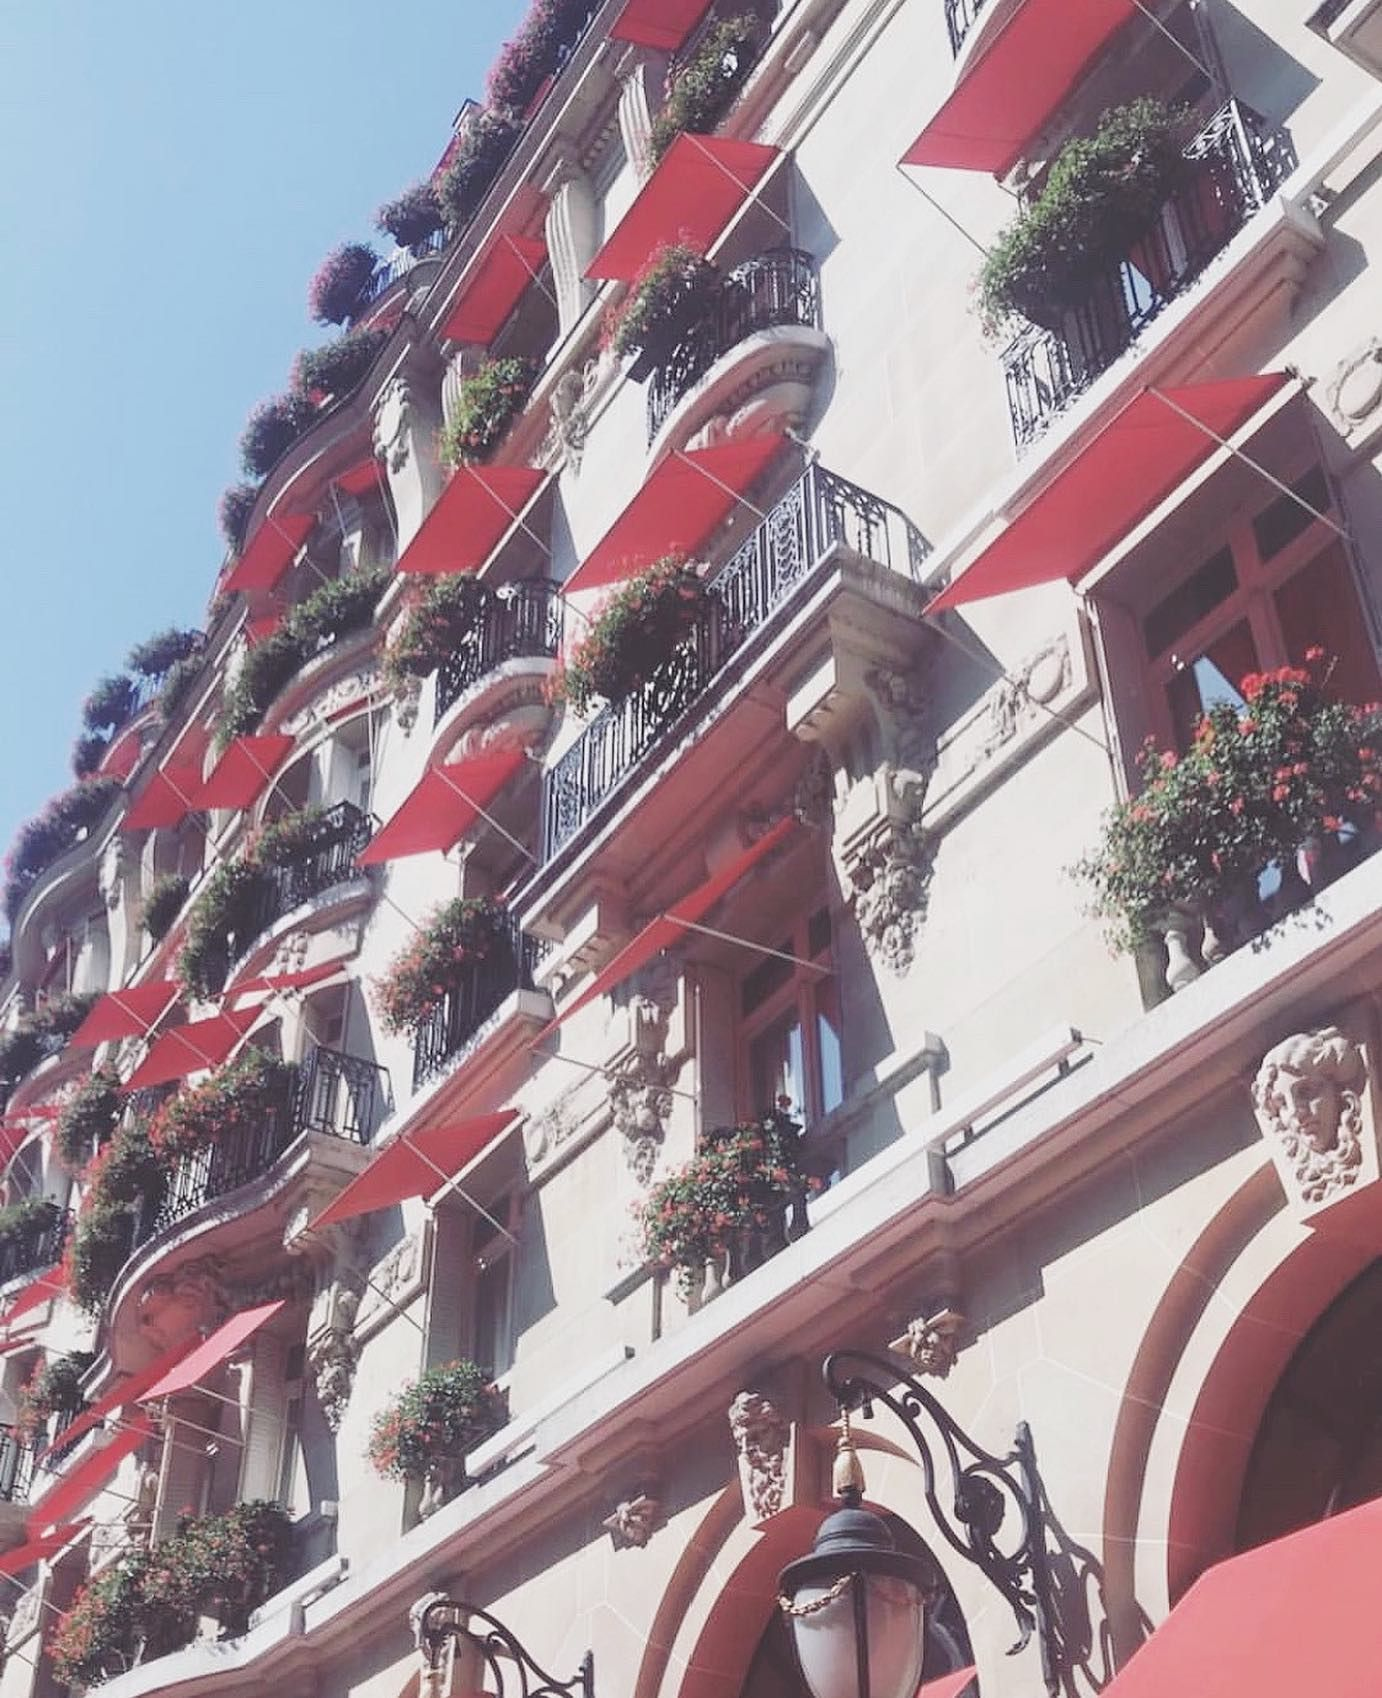 Paris May Be Known As The City Of Lights But Passion Radiates In This Dynamic City I Strolled By The Famous Histo In 2020 Hotel Facade Red Geraniums Plaza Athenee